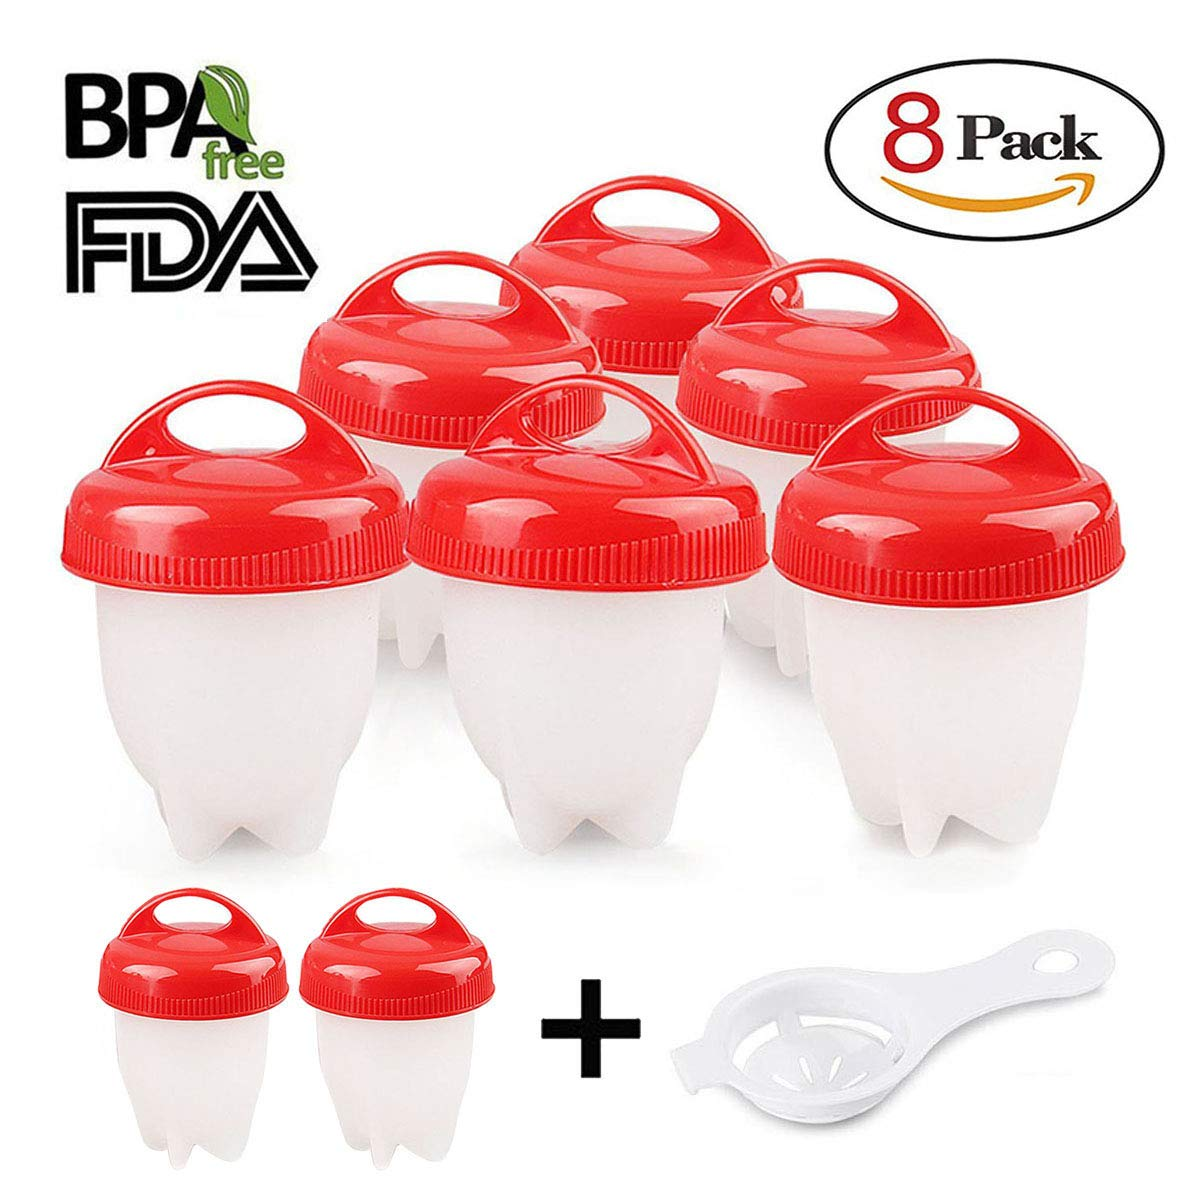 Egg Cooker 8 Pack Egglette Egg Poachers - Hard Boiled Eggs without the Shell, BPA Free, Non Stick Silicone Egg Cups, AS SEEN ON TV, by MOOKZZ